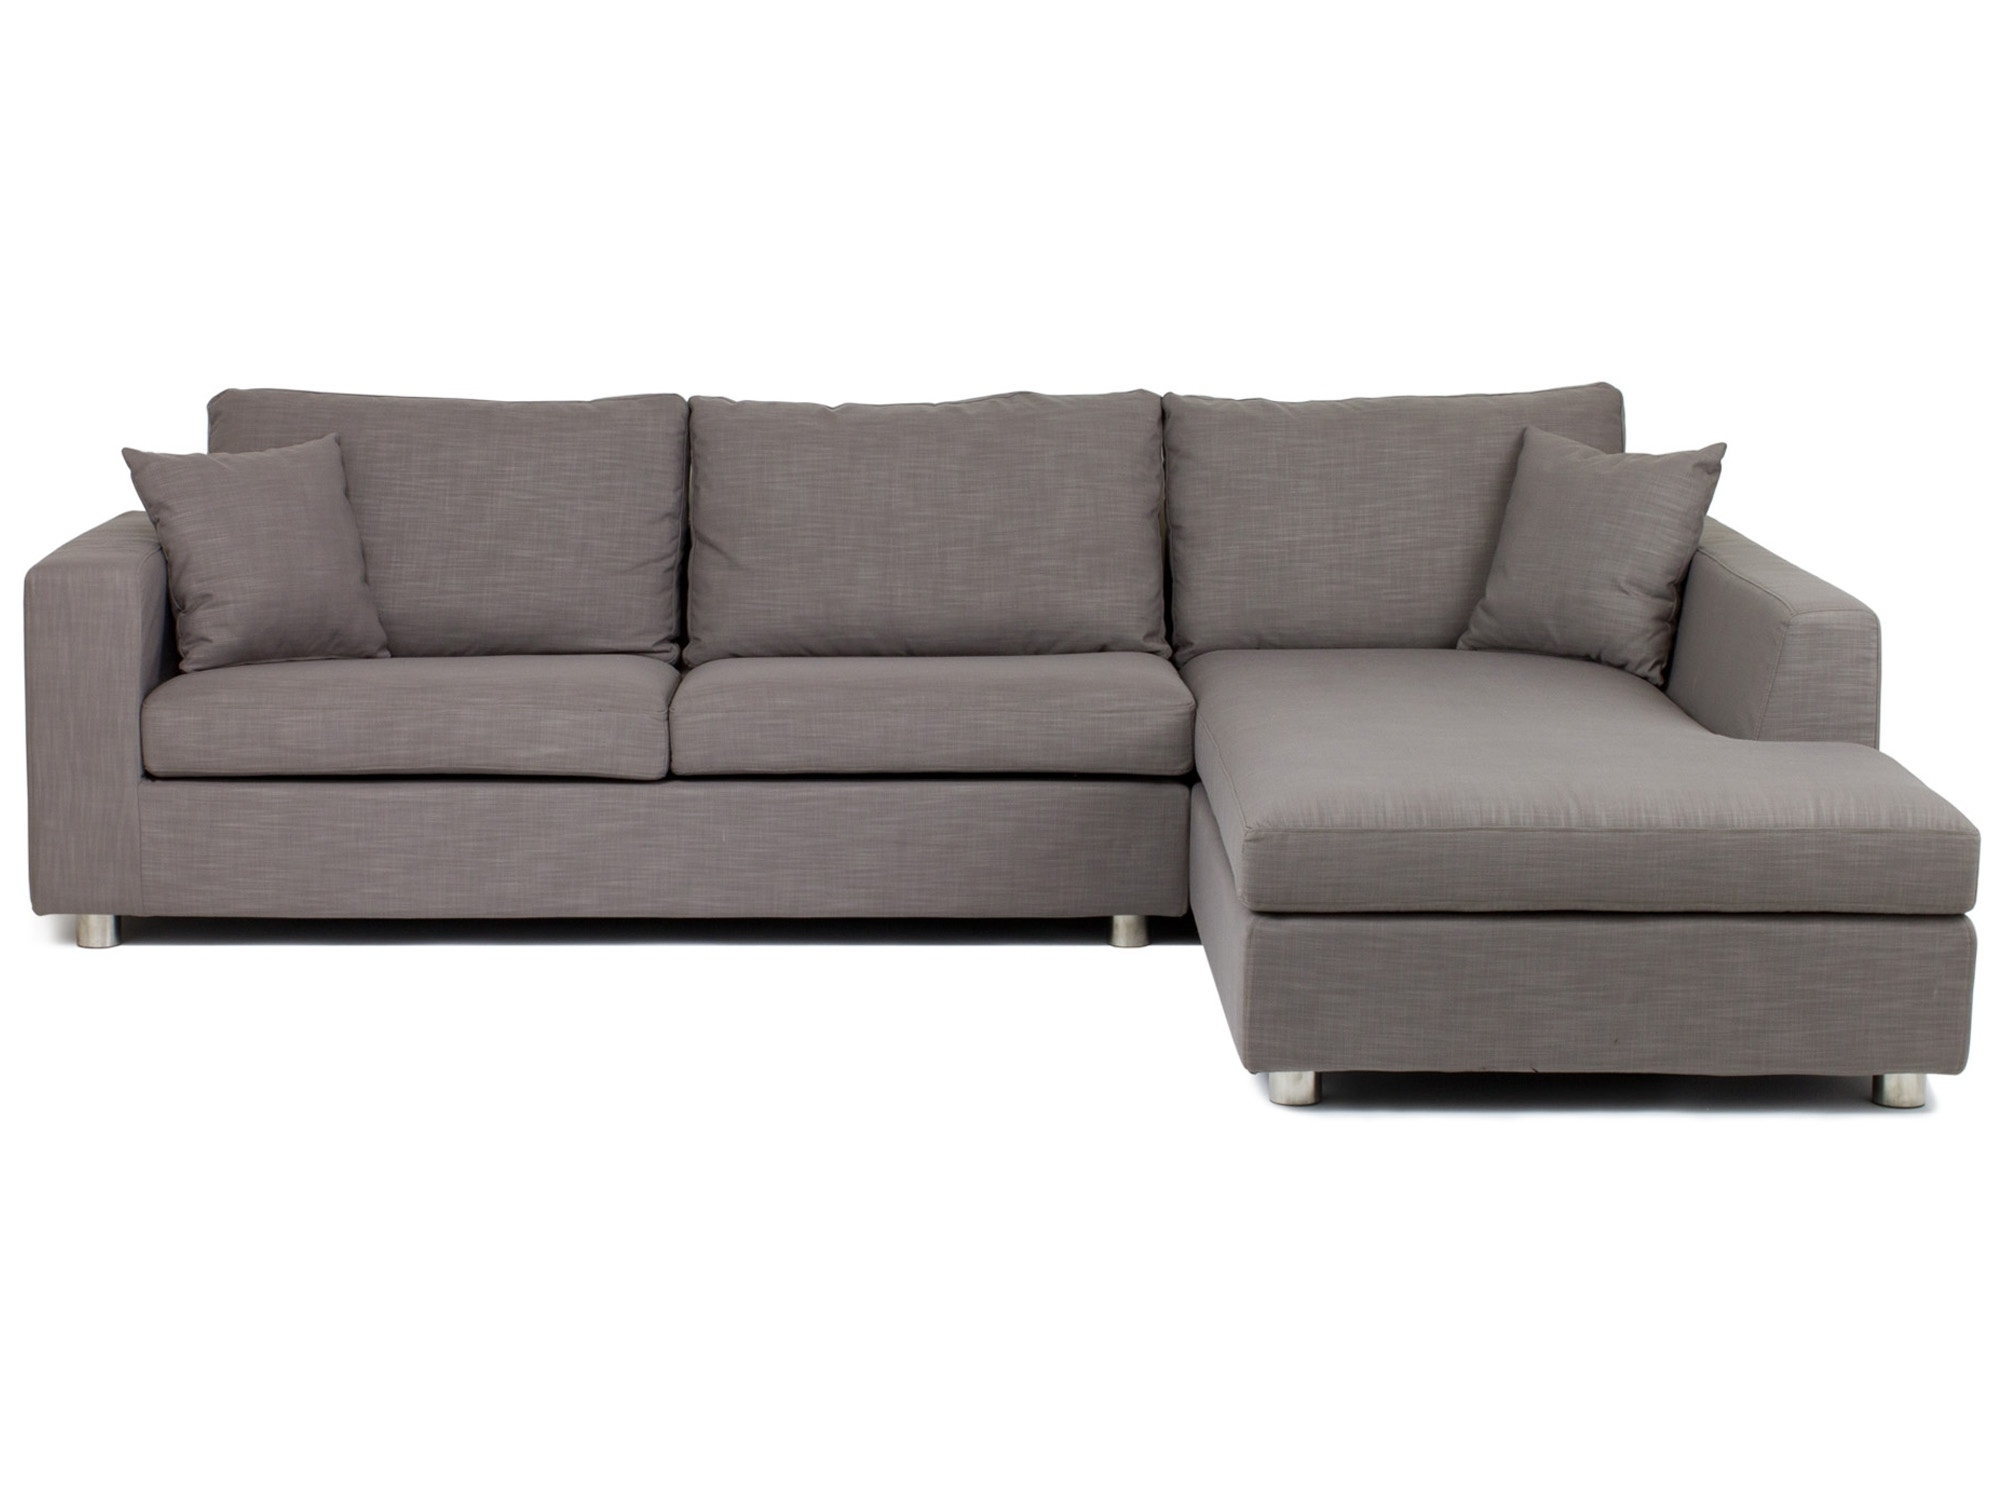 Newest Elegant Chaise Longue Sofa Beds 63 About Remodel Verona Sofa Bed Pertaining To Sofa Beds With Chaise Lounge (View 4 of 15)